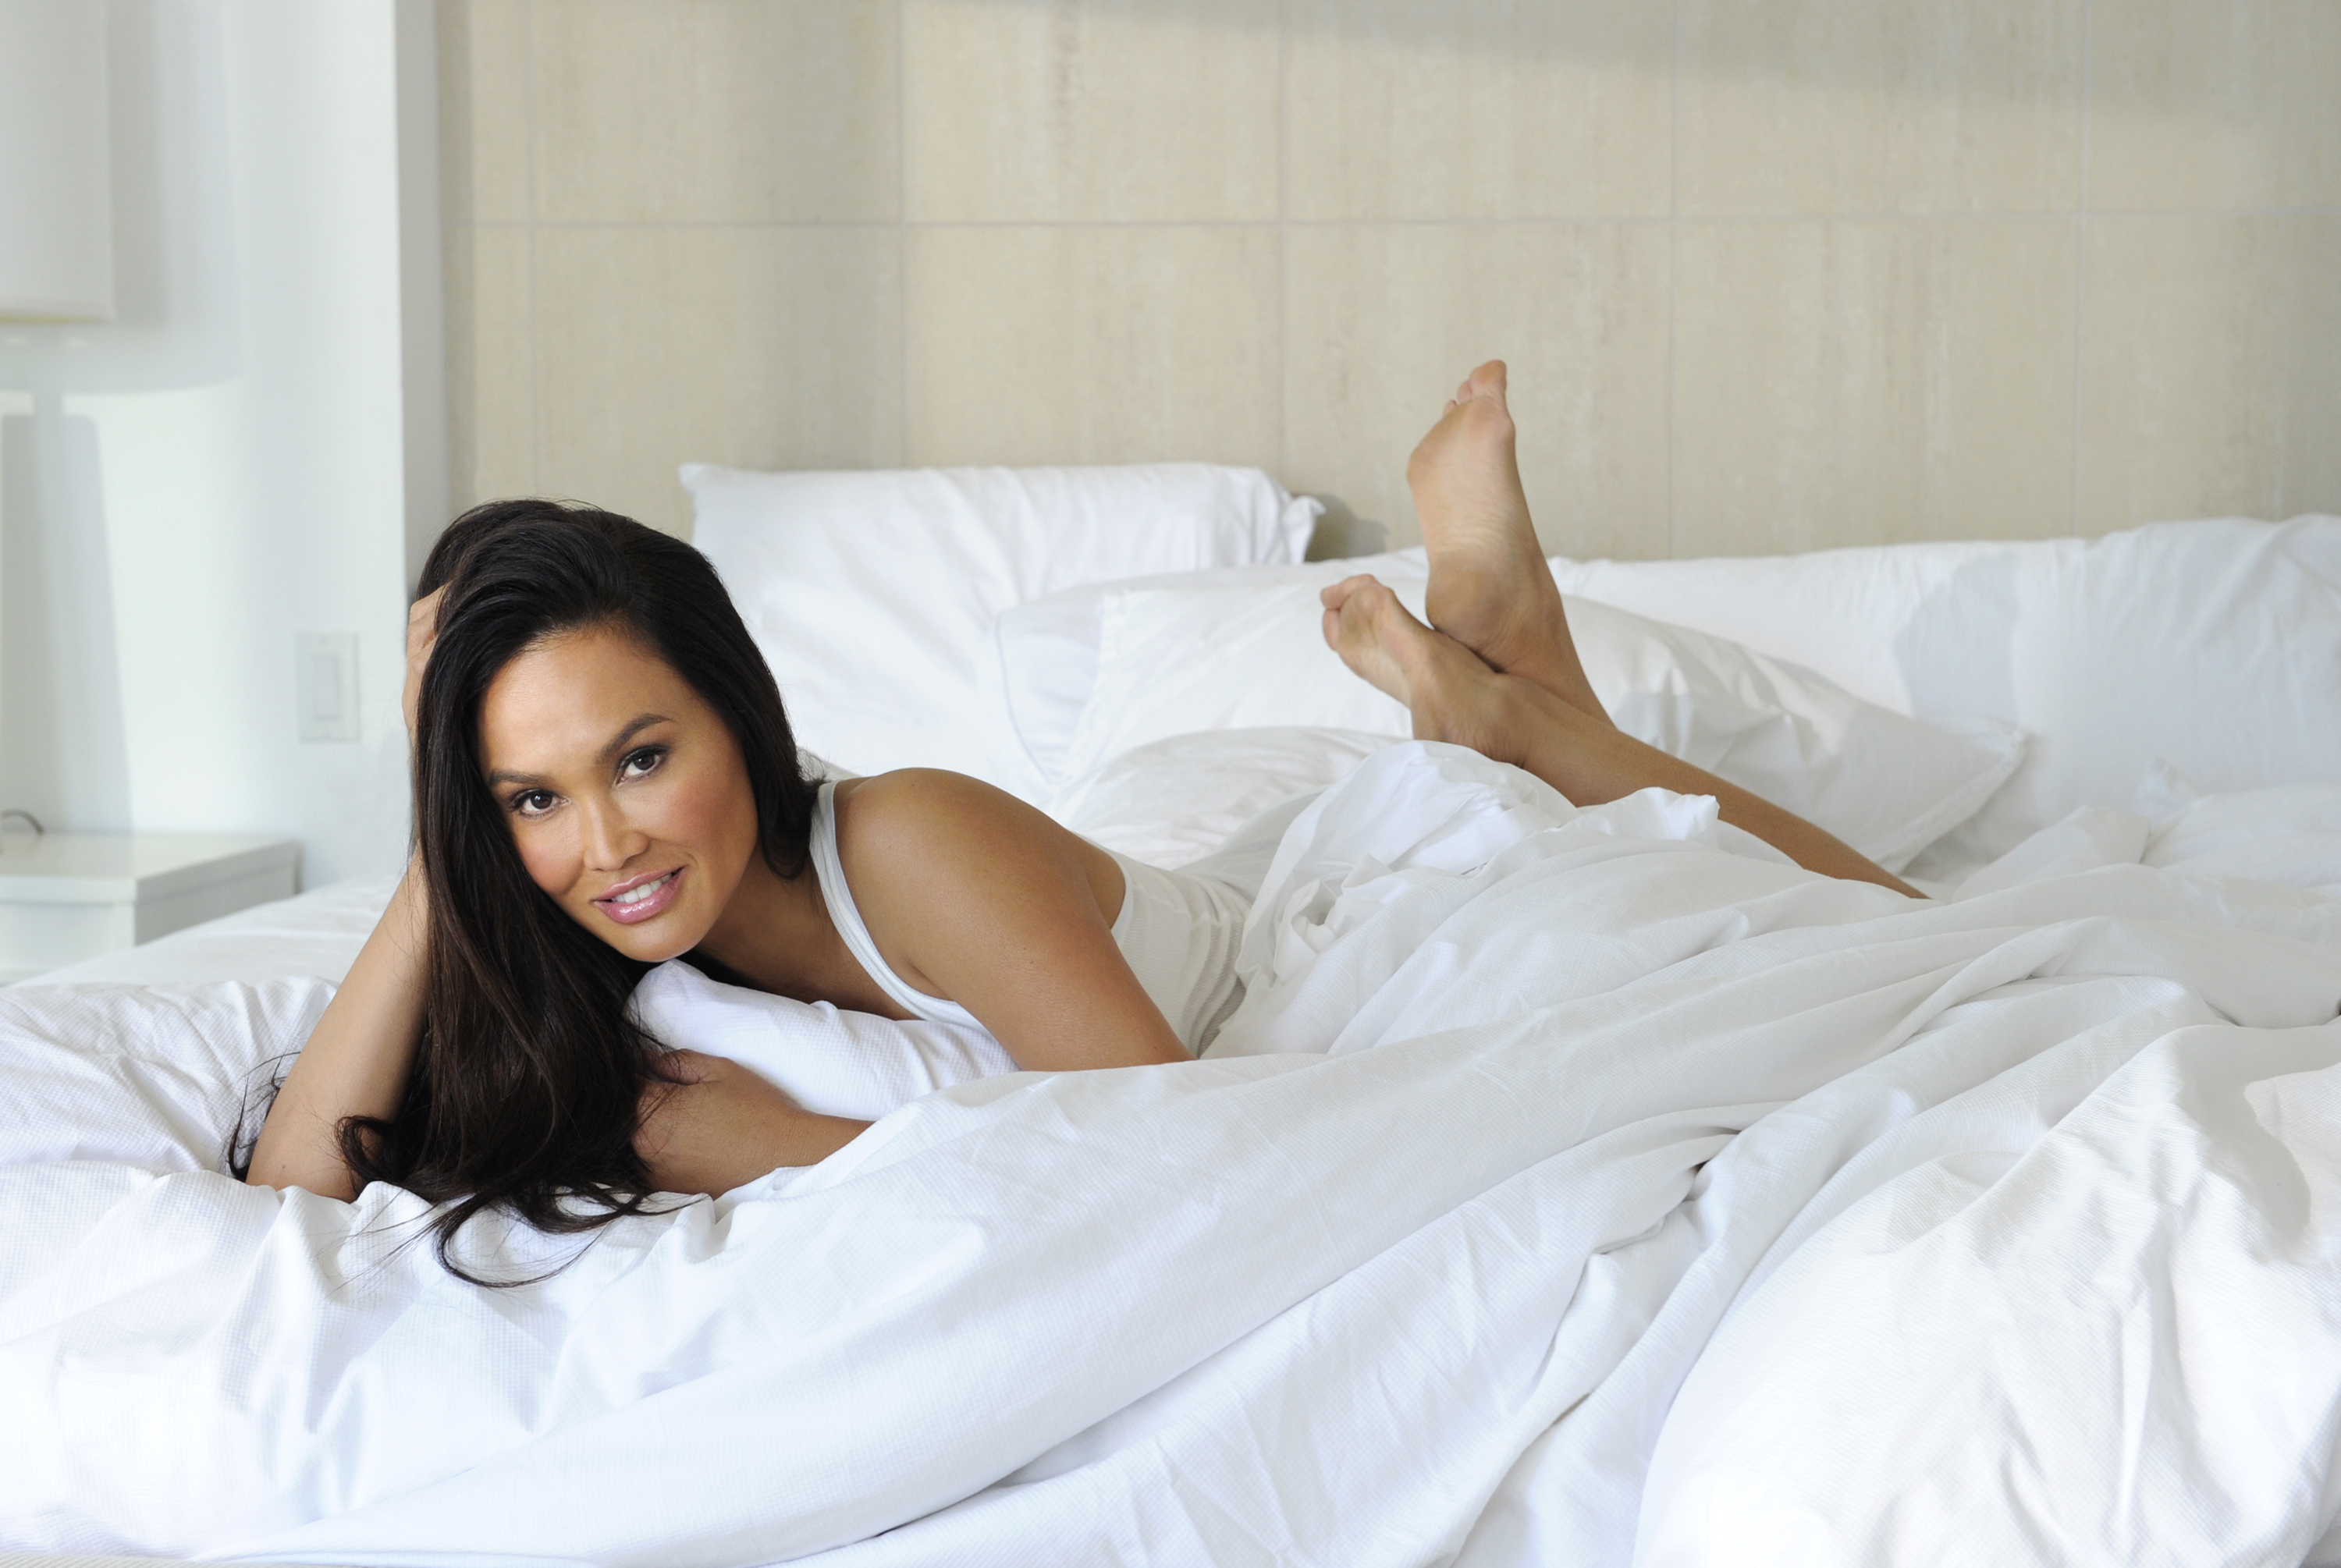 At Home Shoot With Tia Carrere | Flickr - Photo Sharing!